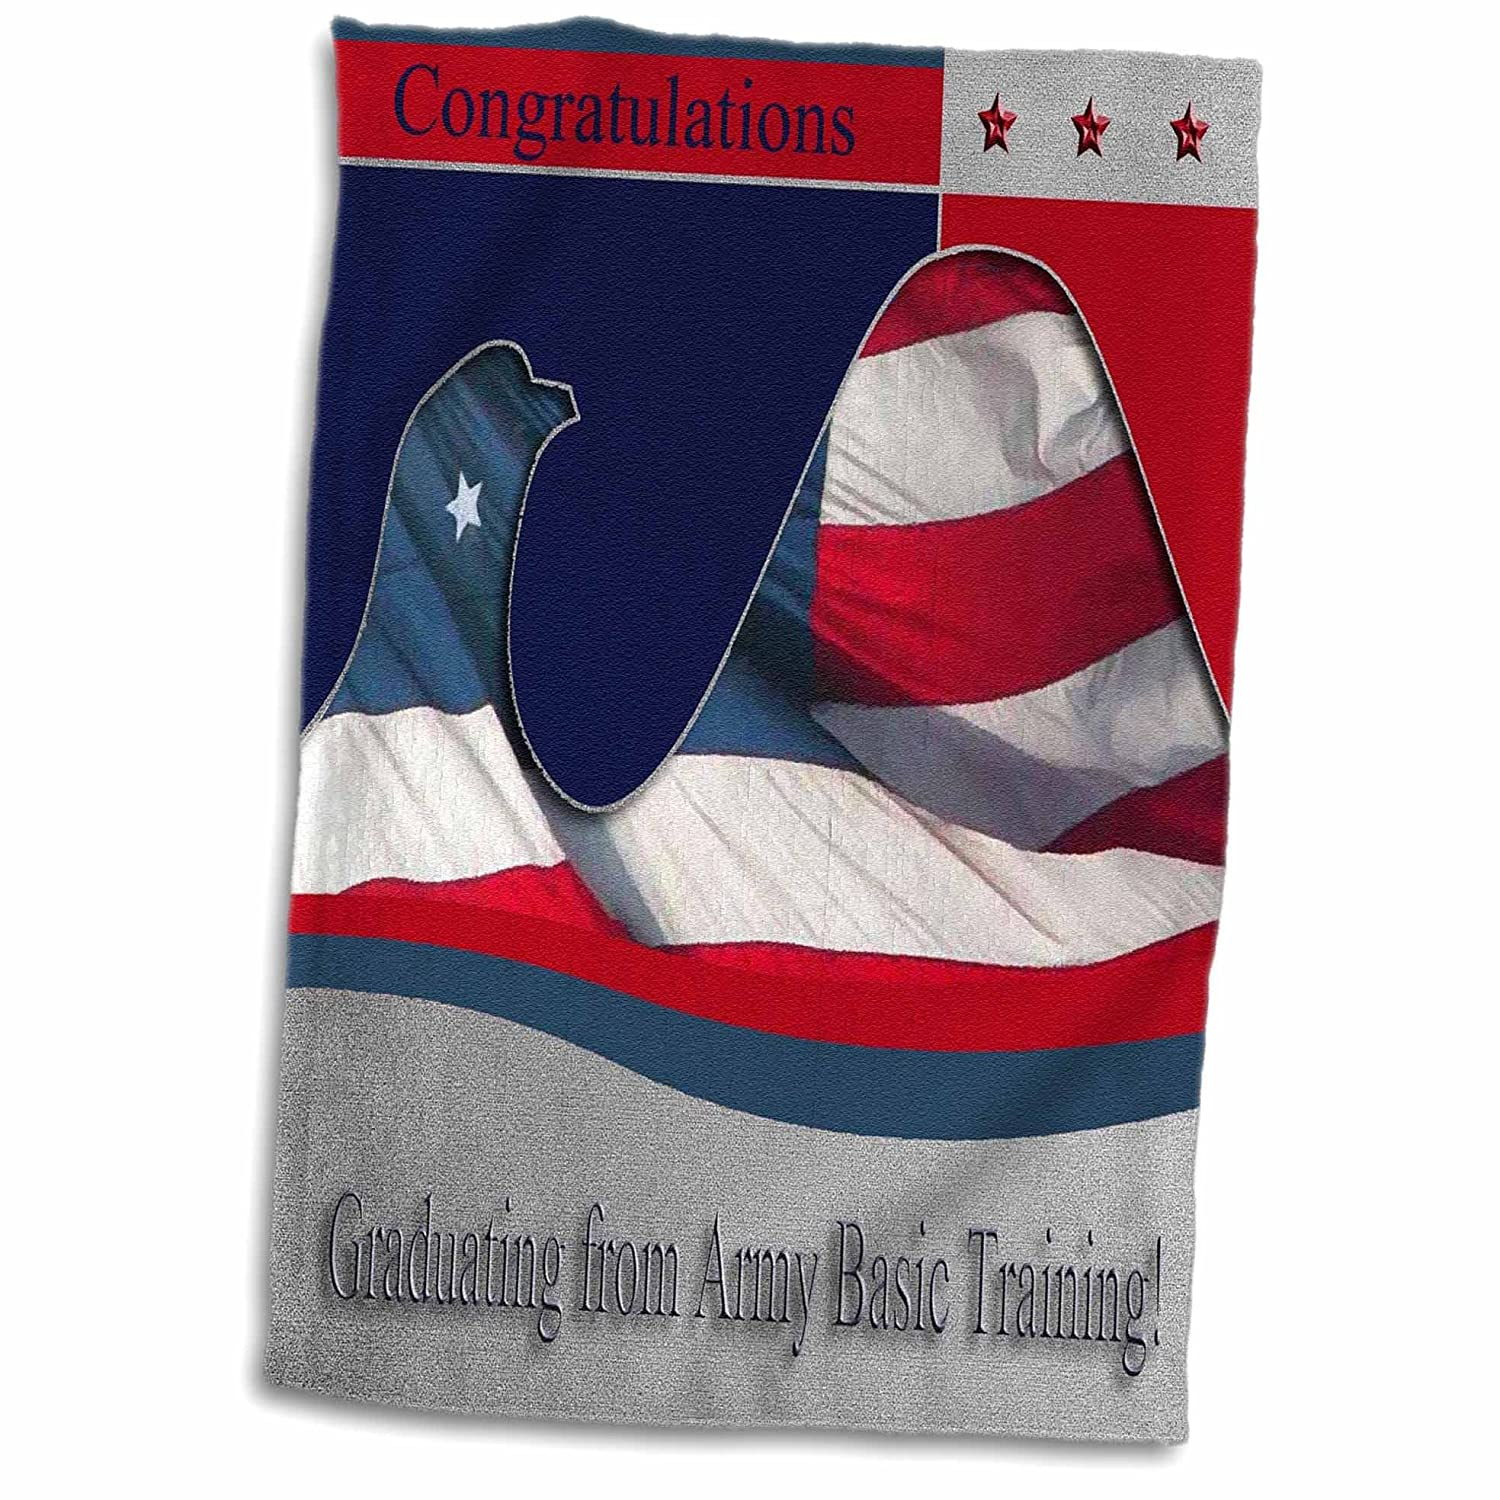 3D Rose Army Basic Training Congratulations - Flag Eagle TWL_40430_1 Towel 15' x 22'